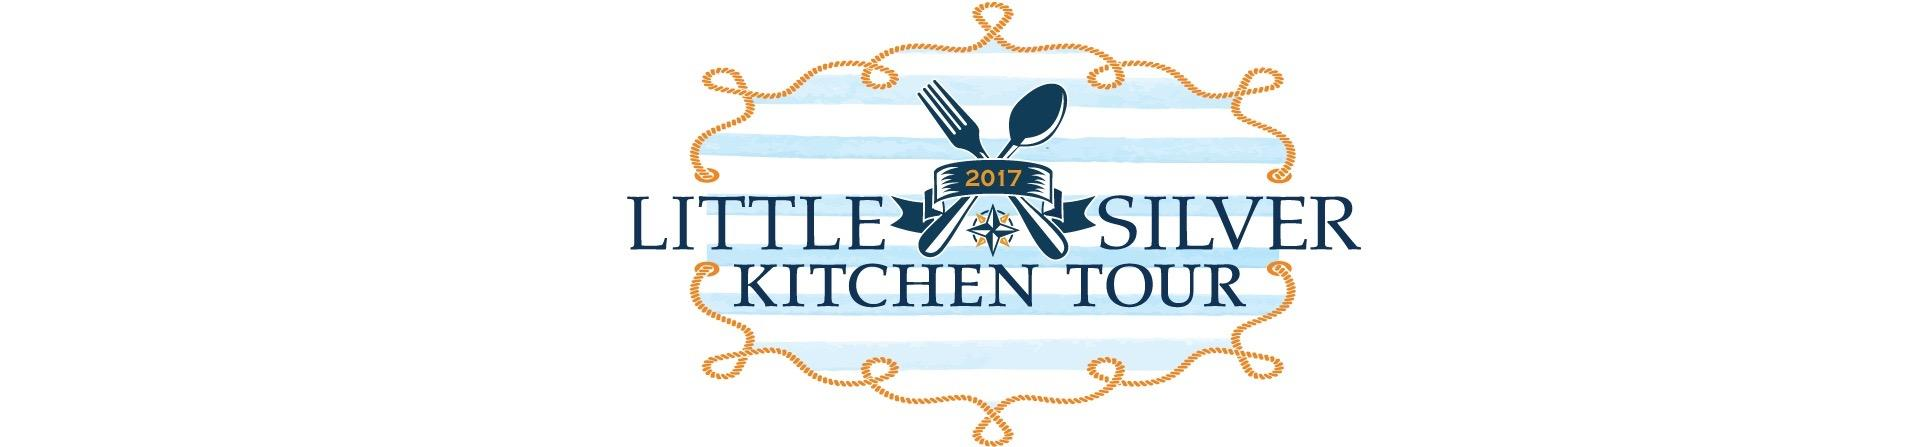 little silver kitchen tour 2017 @ parker homestead-reference